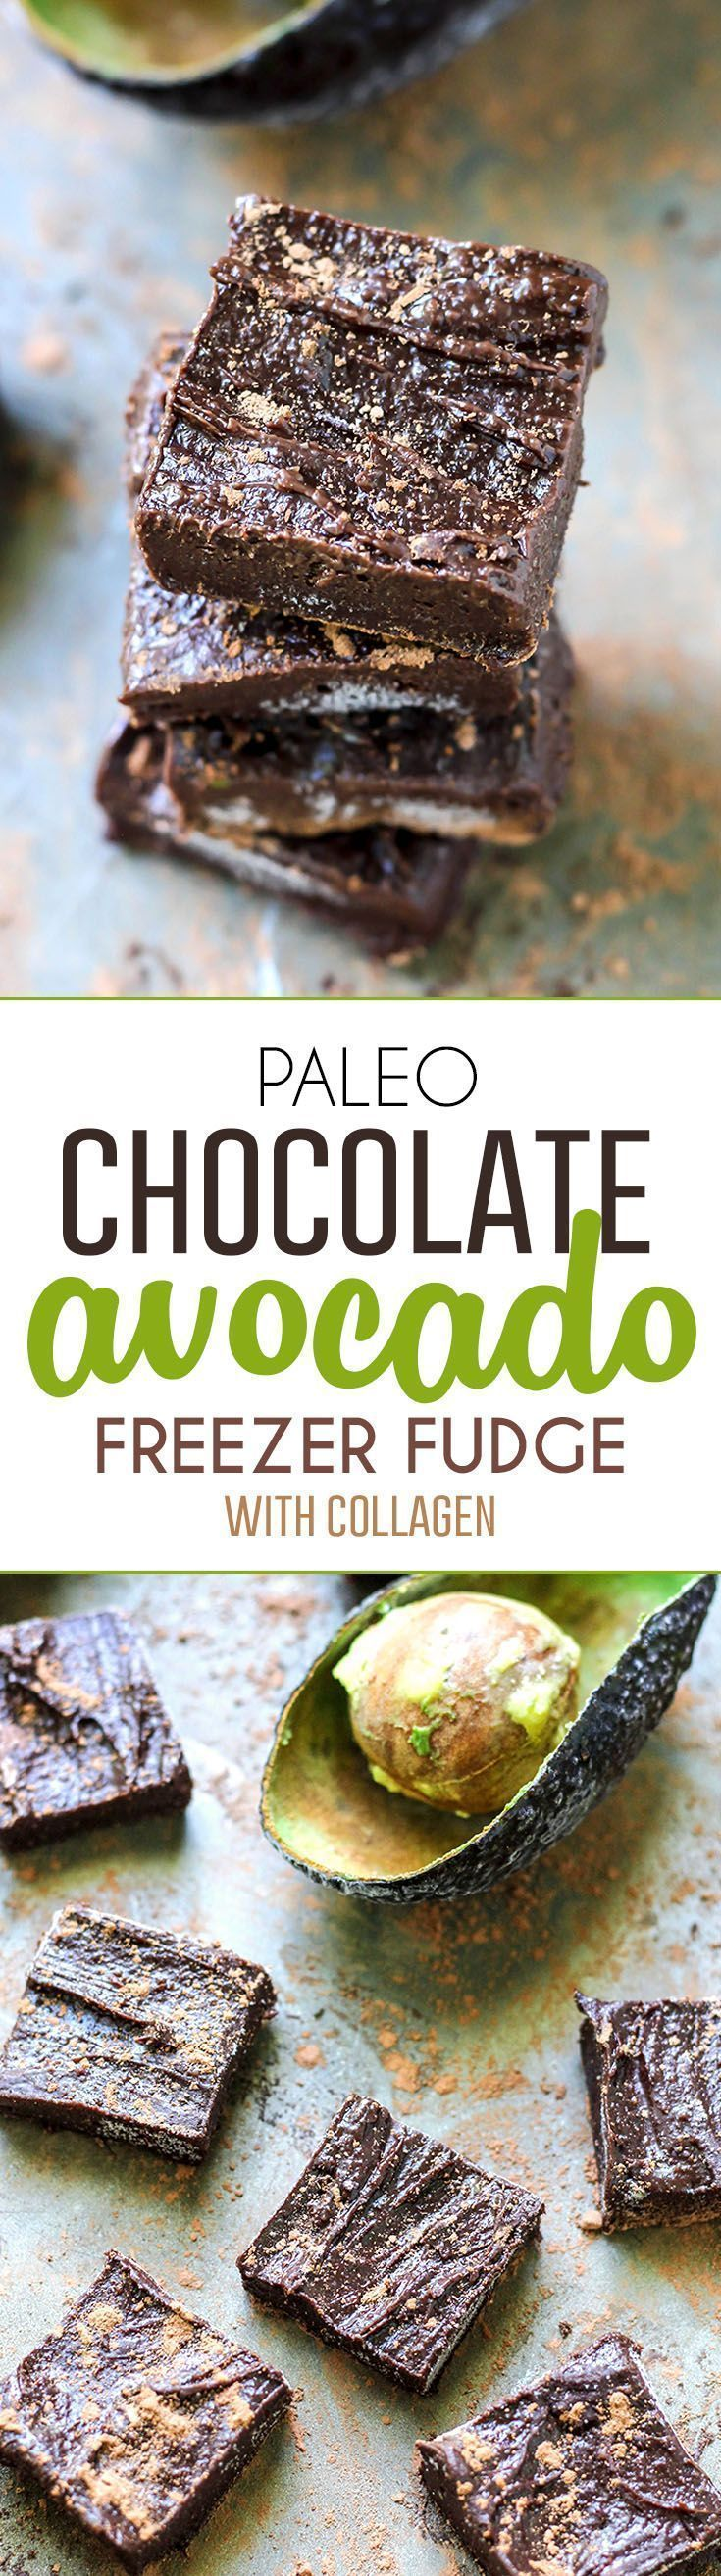 Paleo Chocolate Avocado Freezer Fudge. Just 5 ingredients for these easy, no-bake fudgy treats. (Add mint extract for amazing flavor!!)